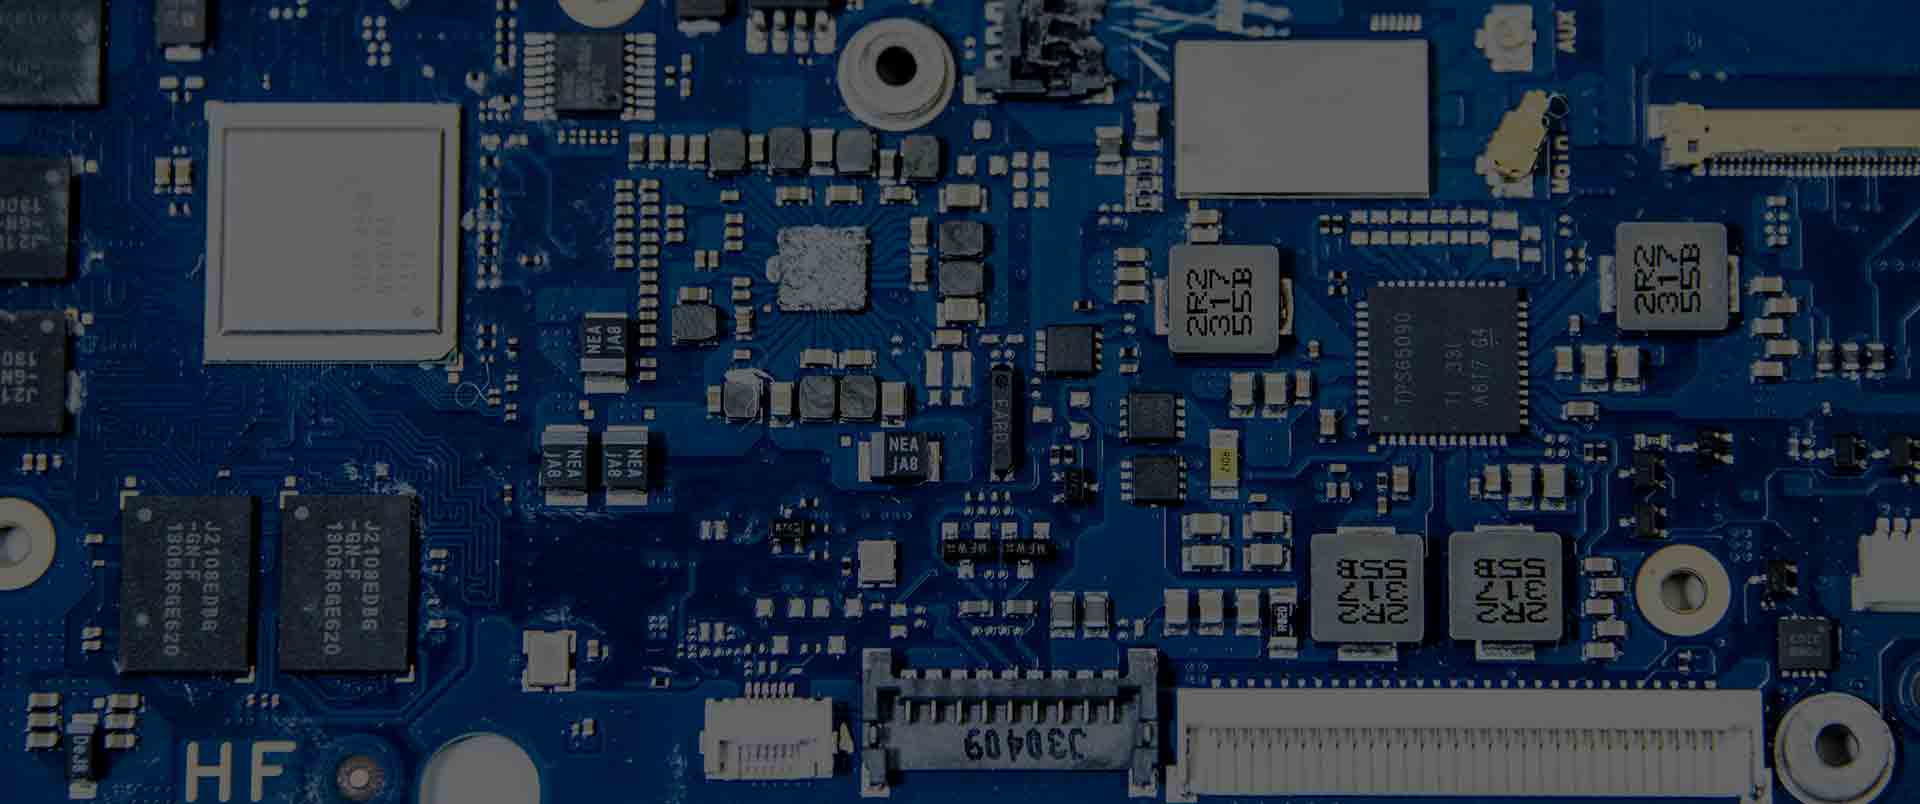 Close up shot of a blue motherboard